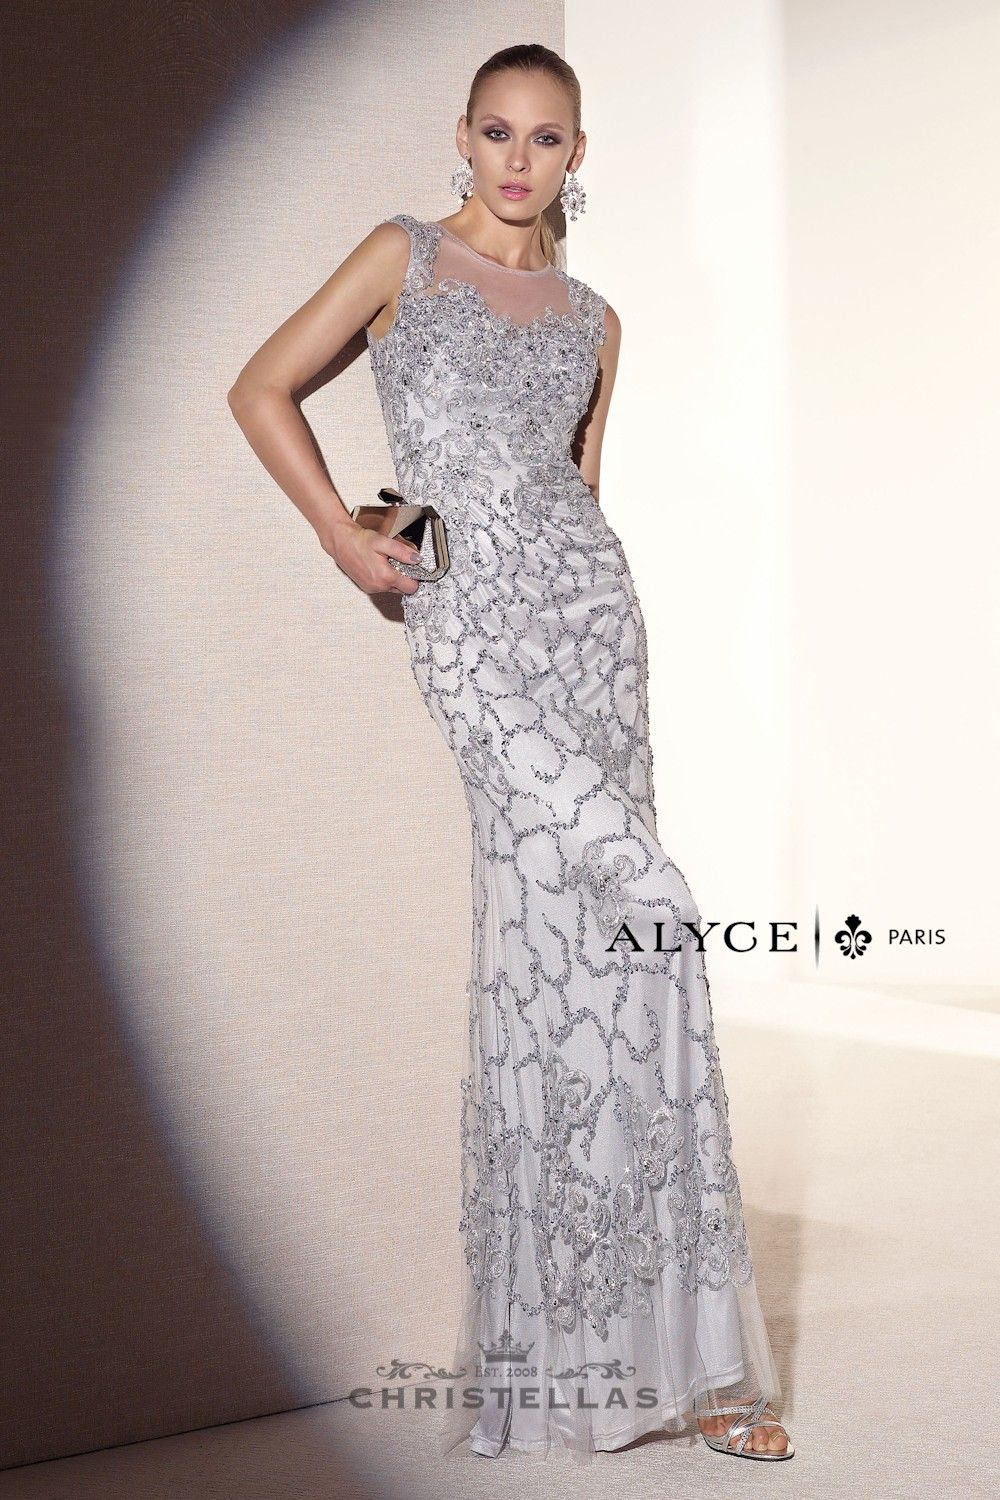 a wonderful long slim line dress with intricate beading pattern